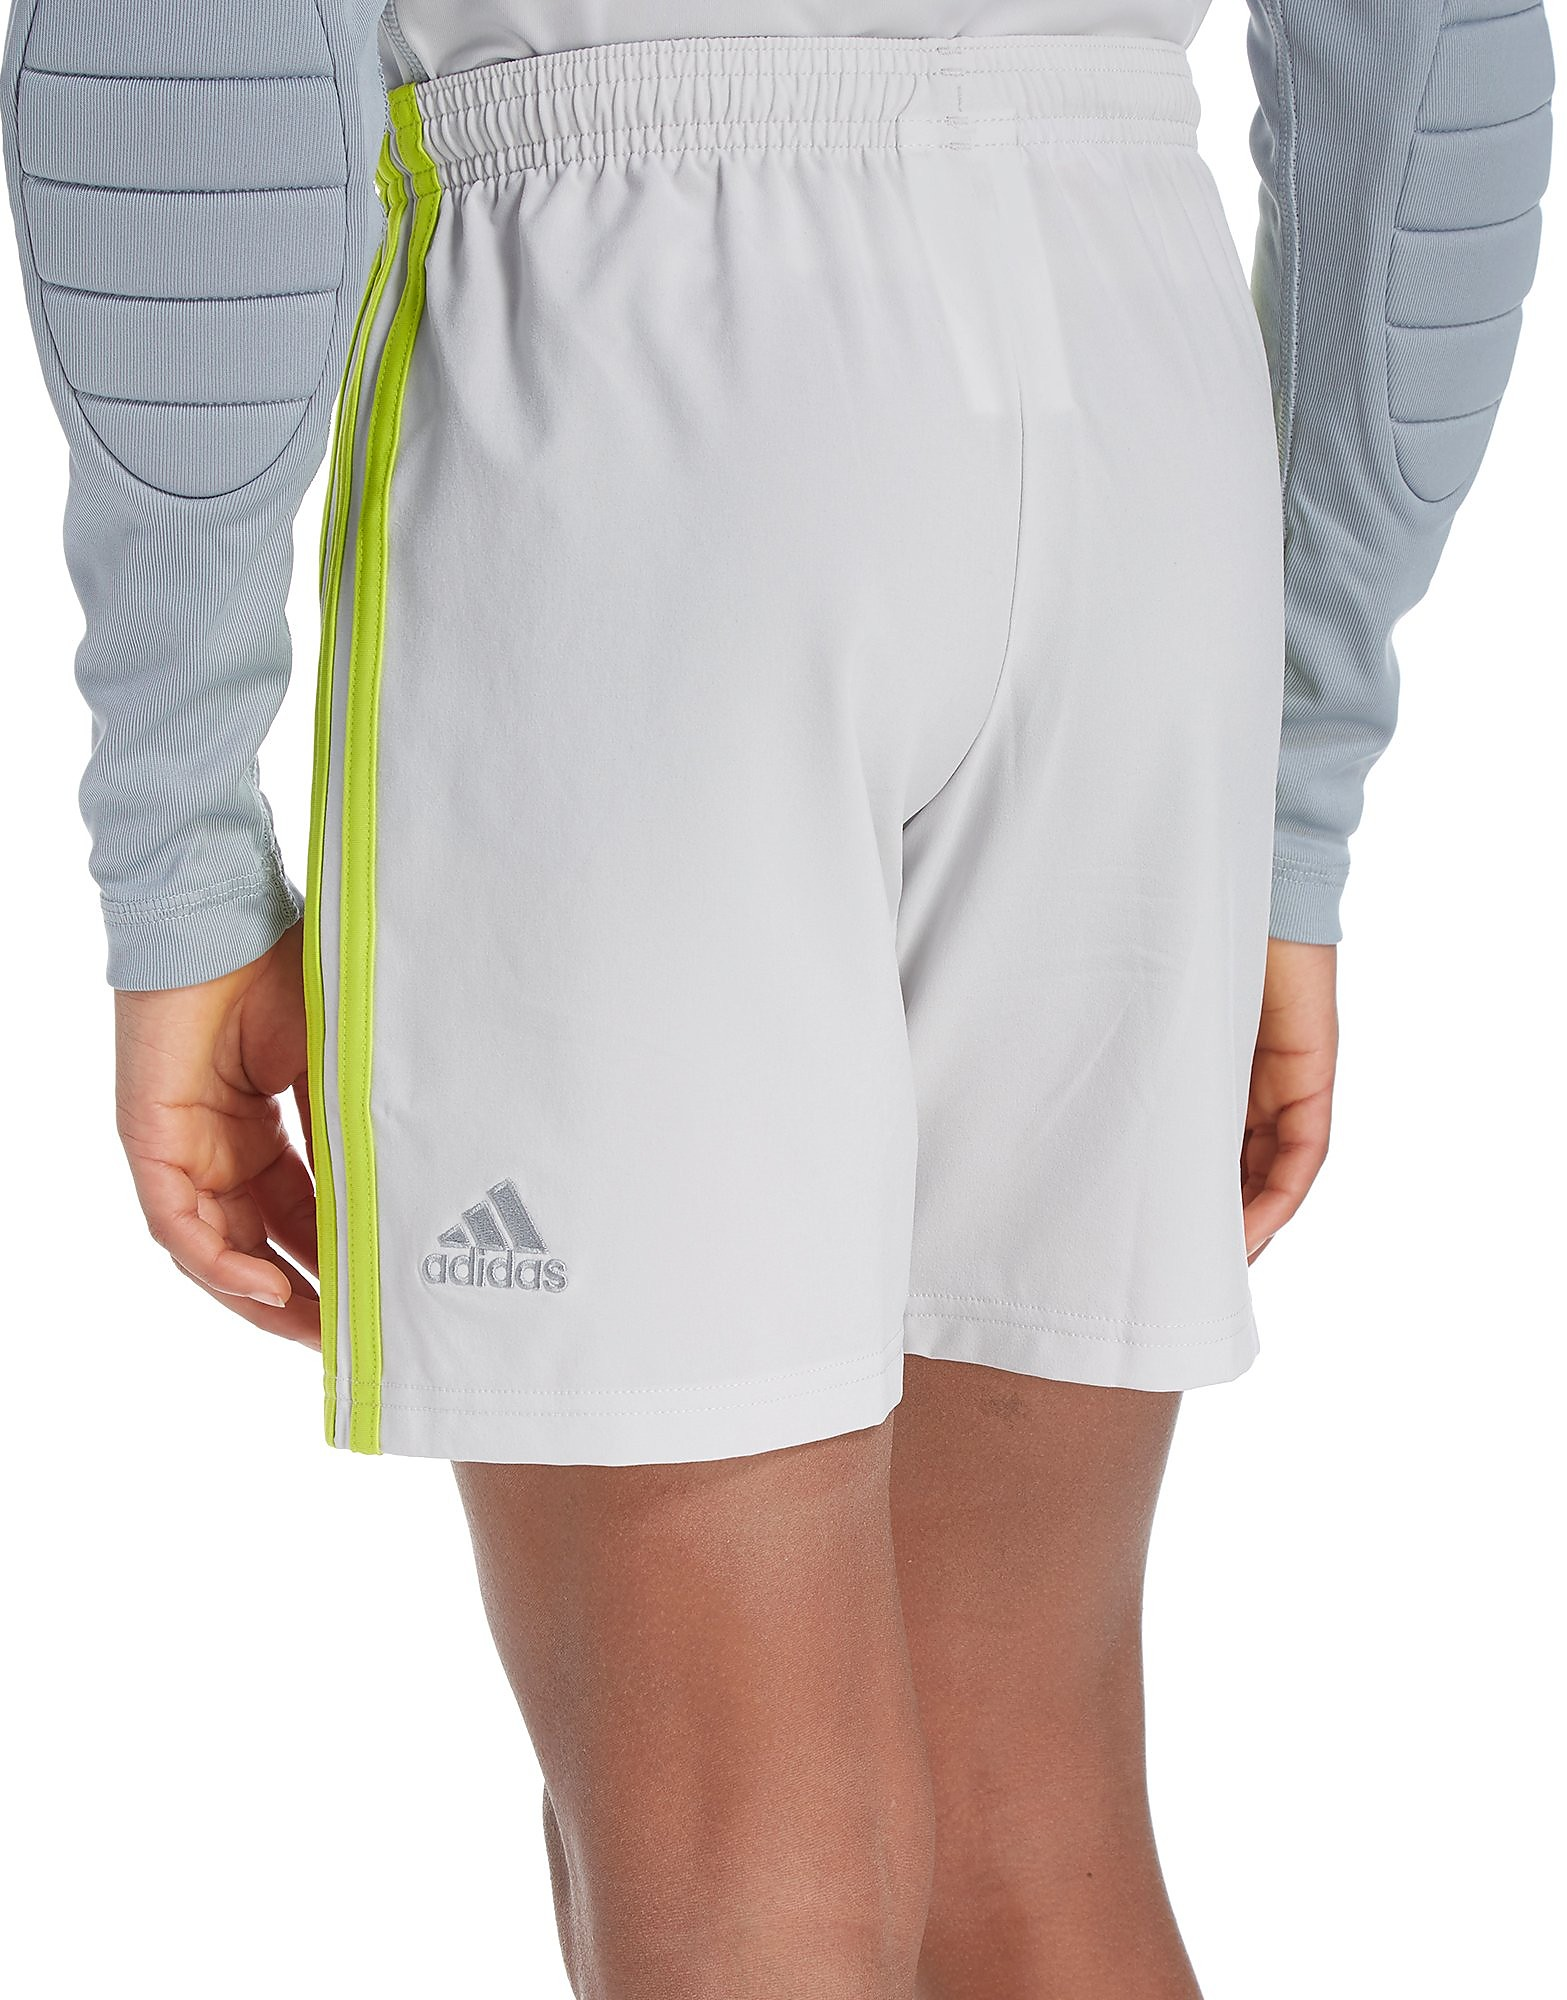 adidas Scotland 2018 Home Goalkeeper Shorts Junior